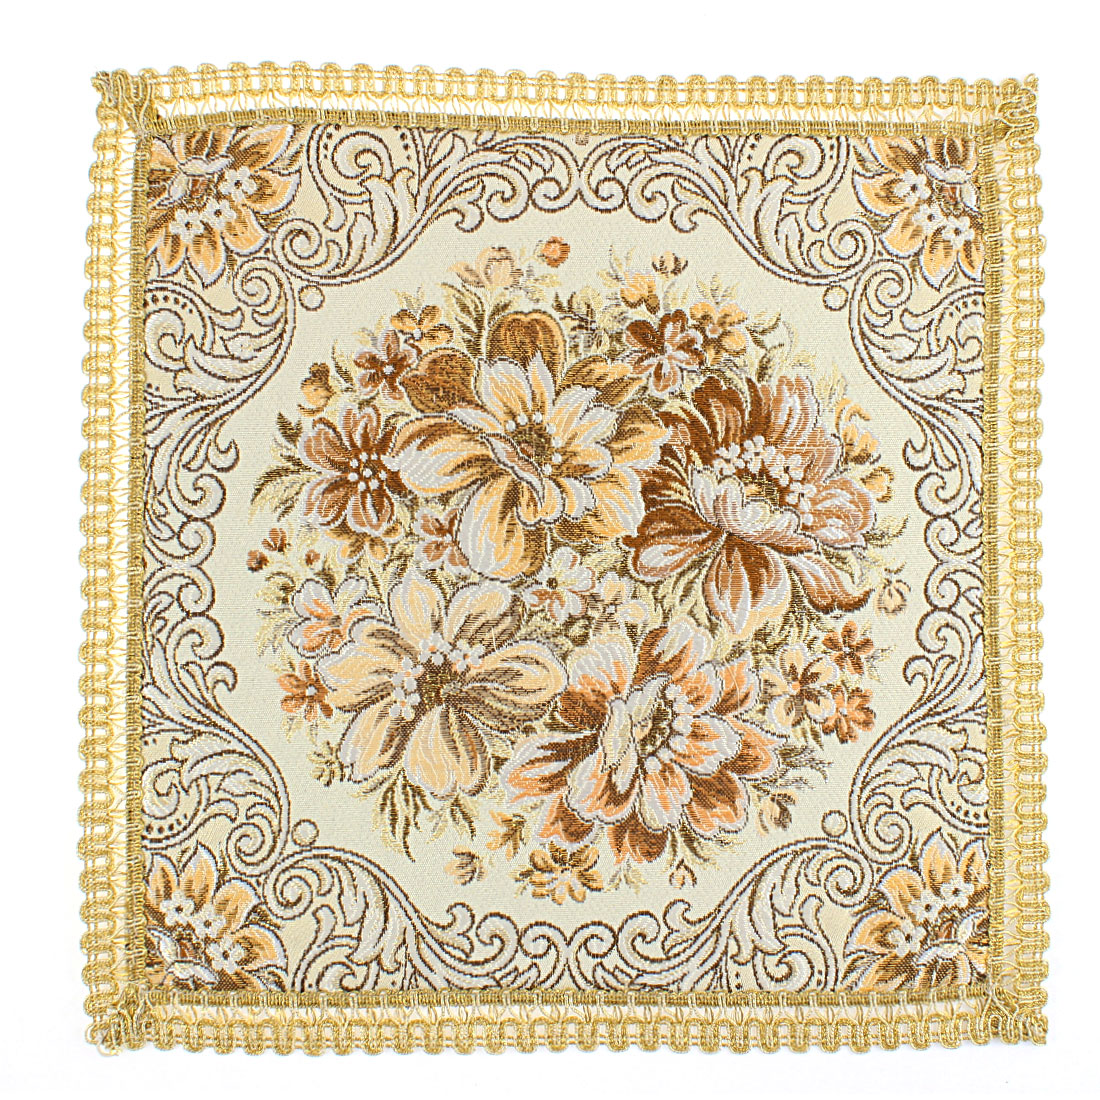 Square Shaped Flower Embroidery Table Cup Mat Placemat 32 x 32cm